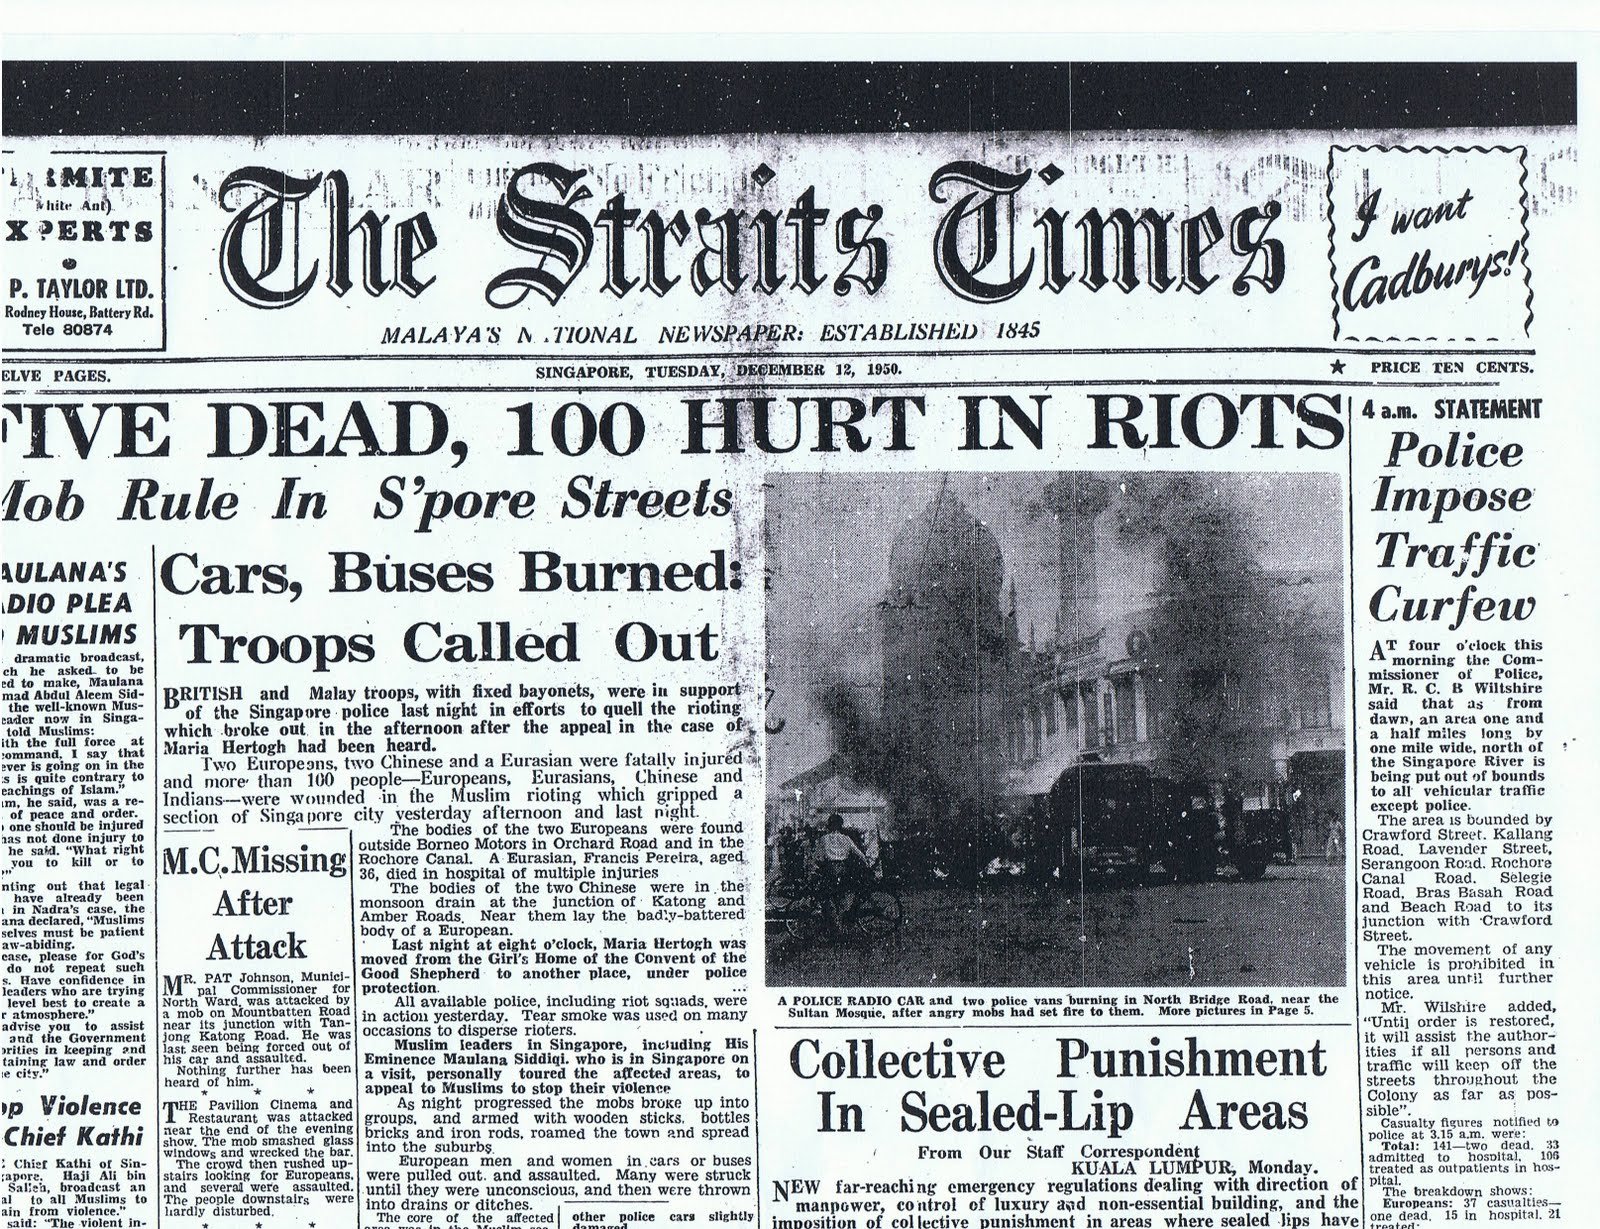 The 5 Worst Riots That Rocked Singapore Thesmartlocal 2 Way Switch Timeline